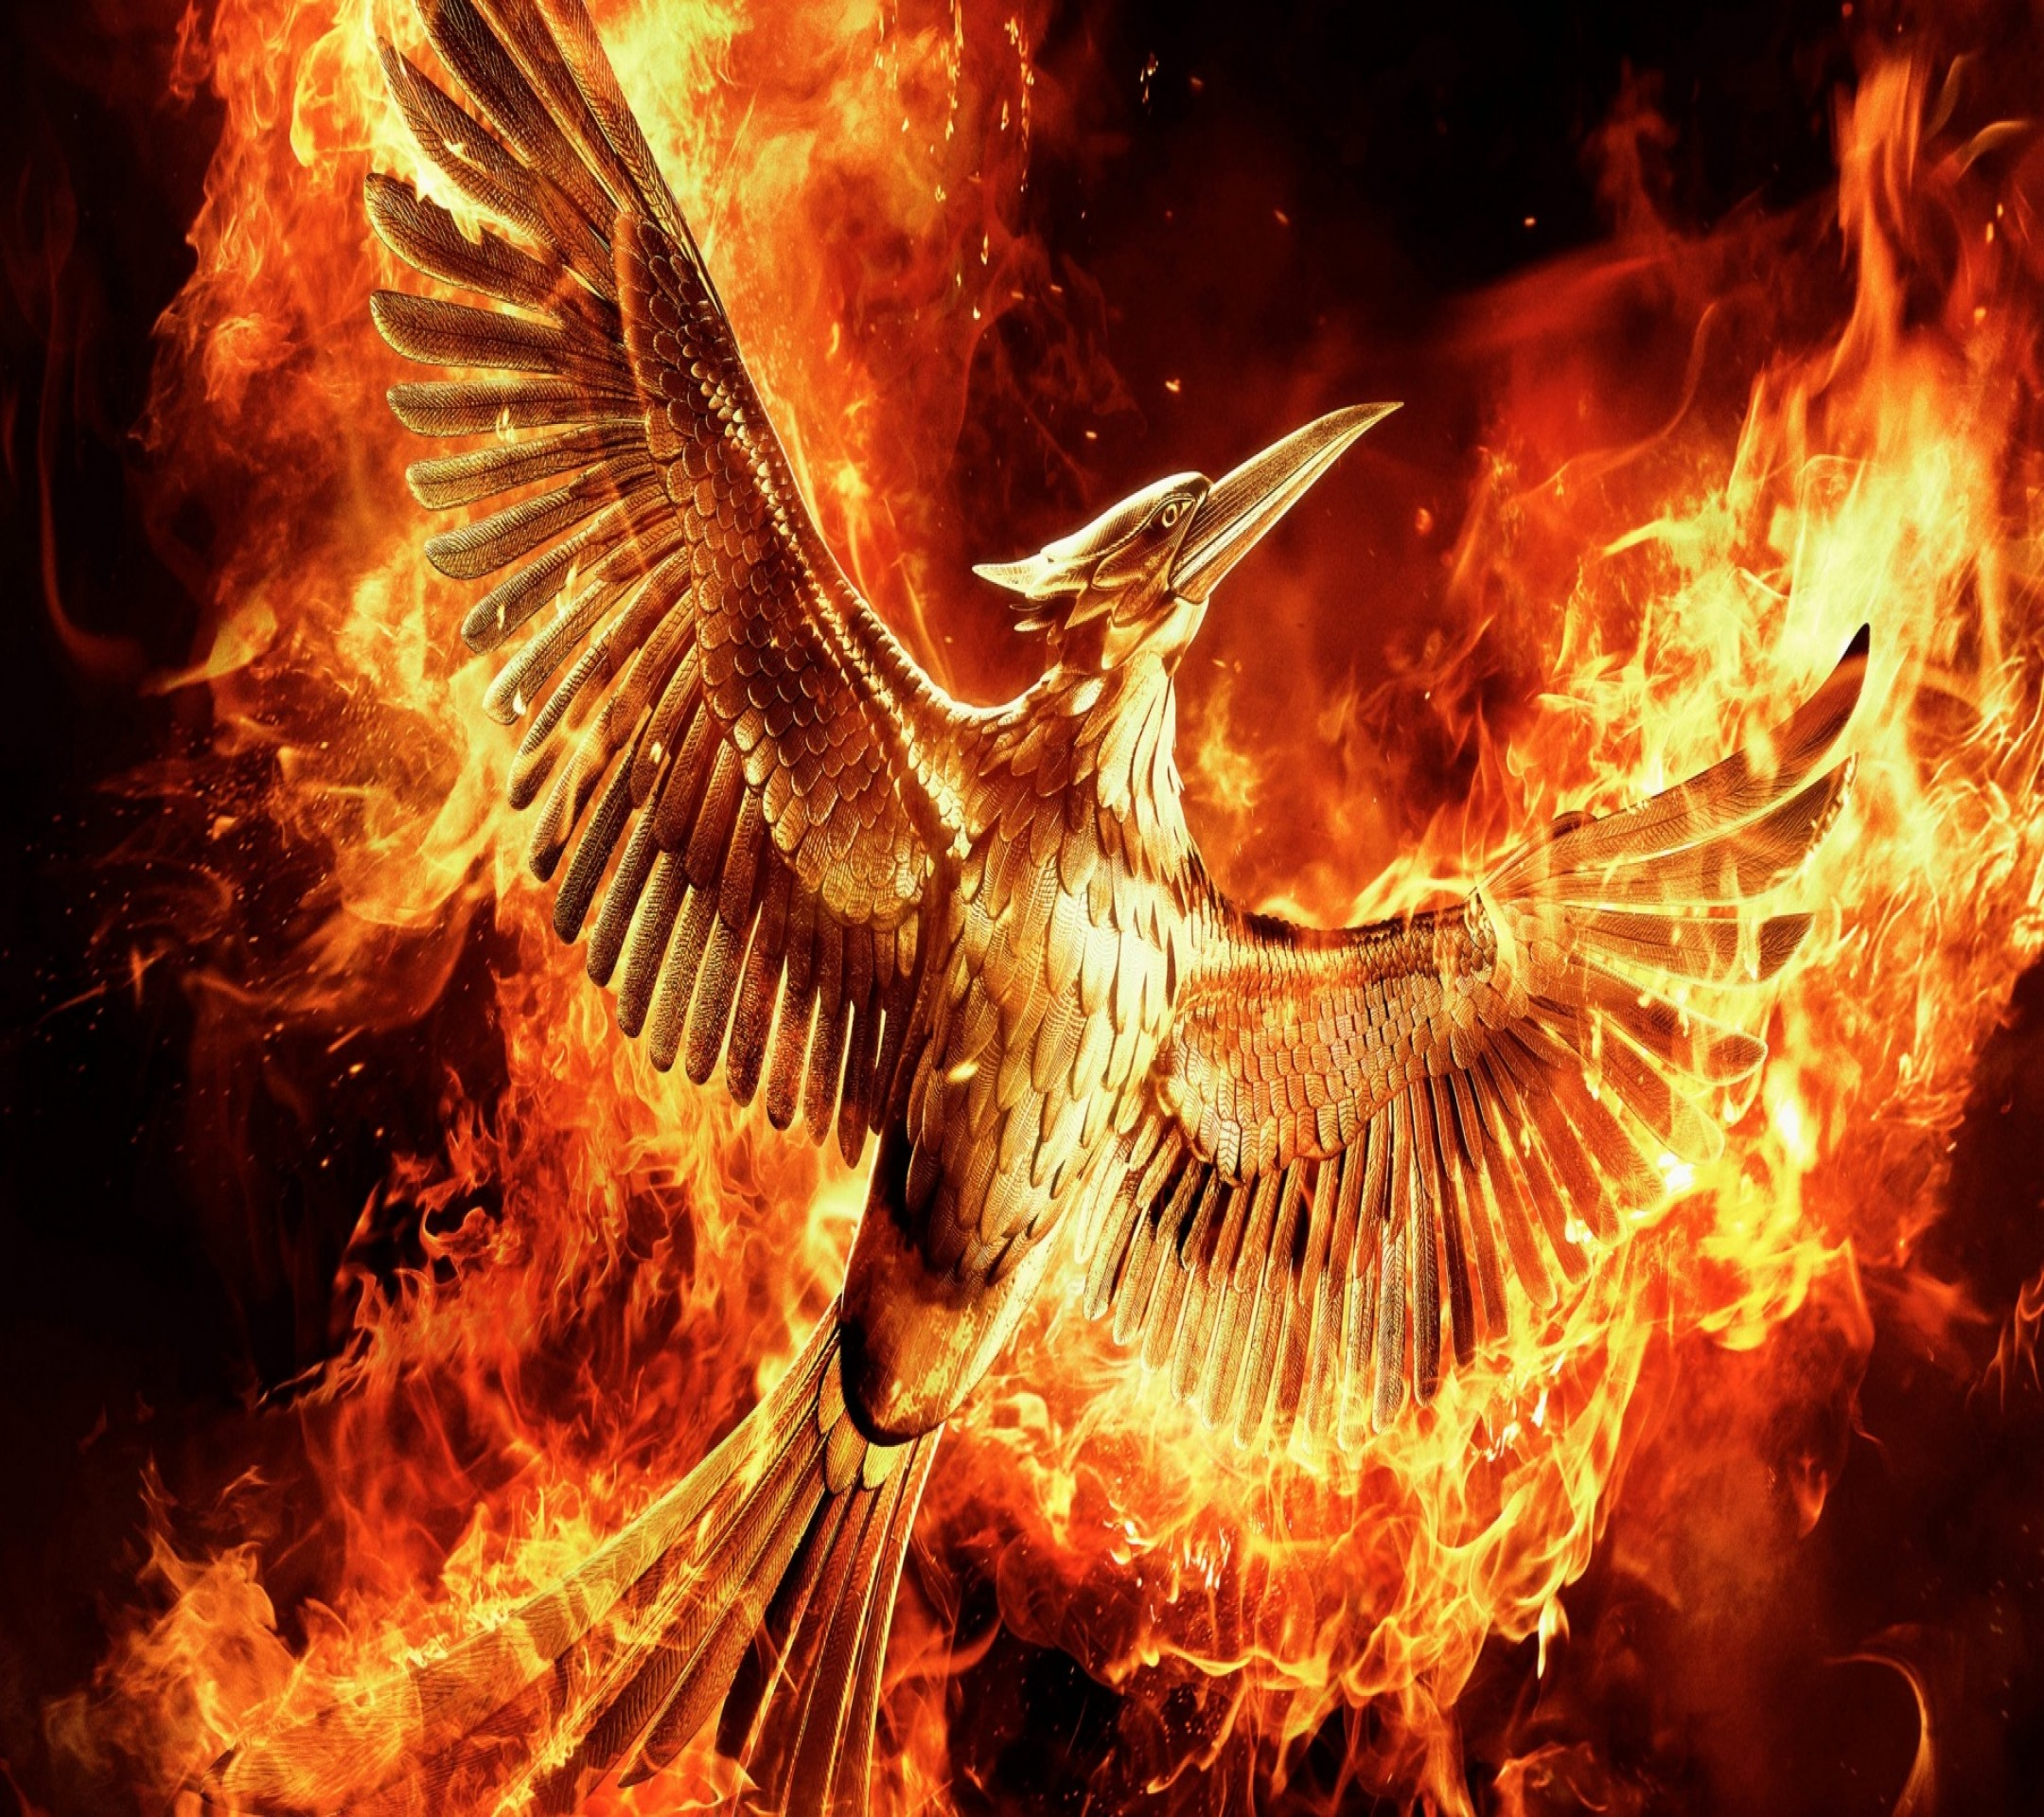 2160x1920 Tap to see 12 HD wallpapers of The Hunger Games: Mockingjay Francis  Lawrence fire bird - Android wallpapers, scrollable backgrounds